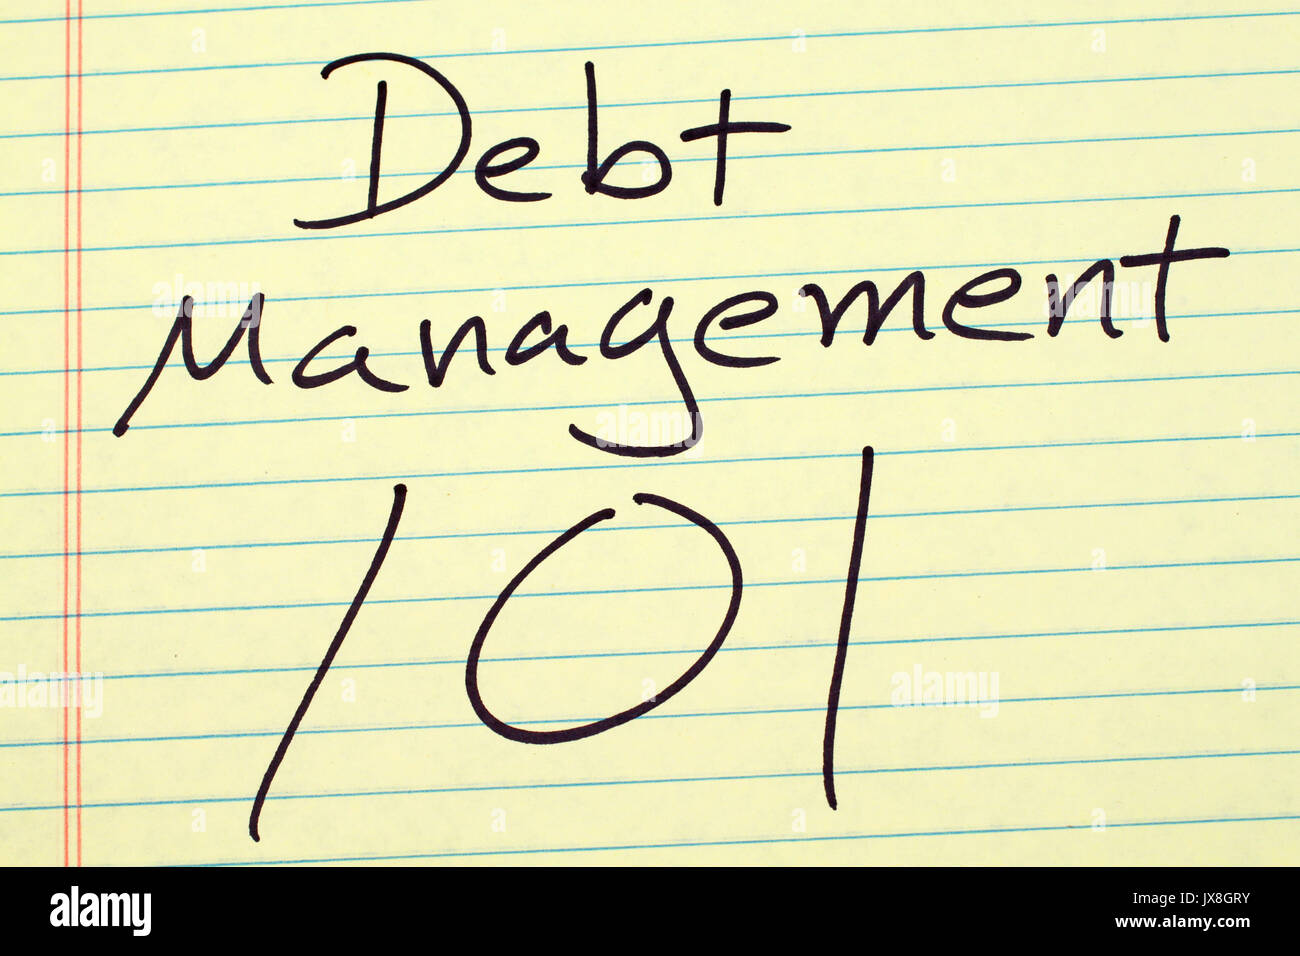 The words 'Debt Management 101' on a yellow legal pad - Stock Image